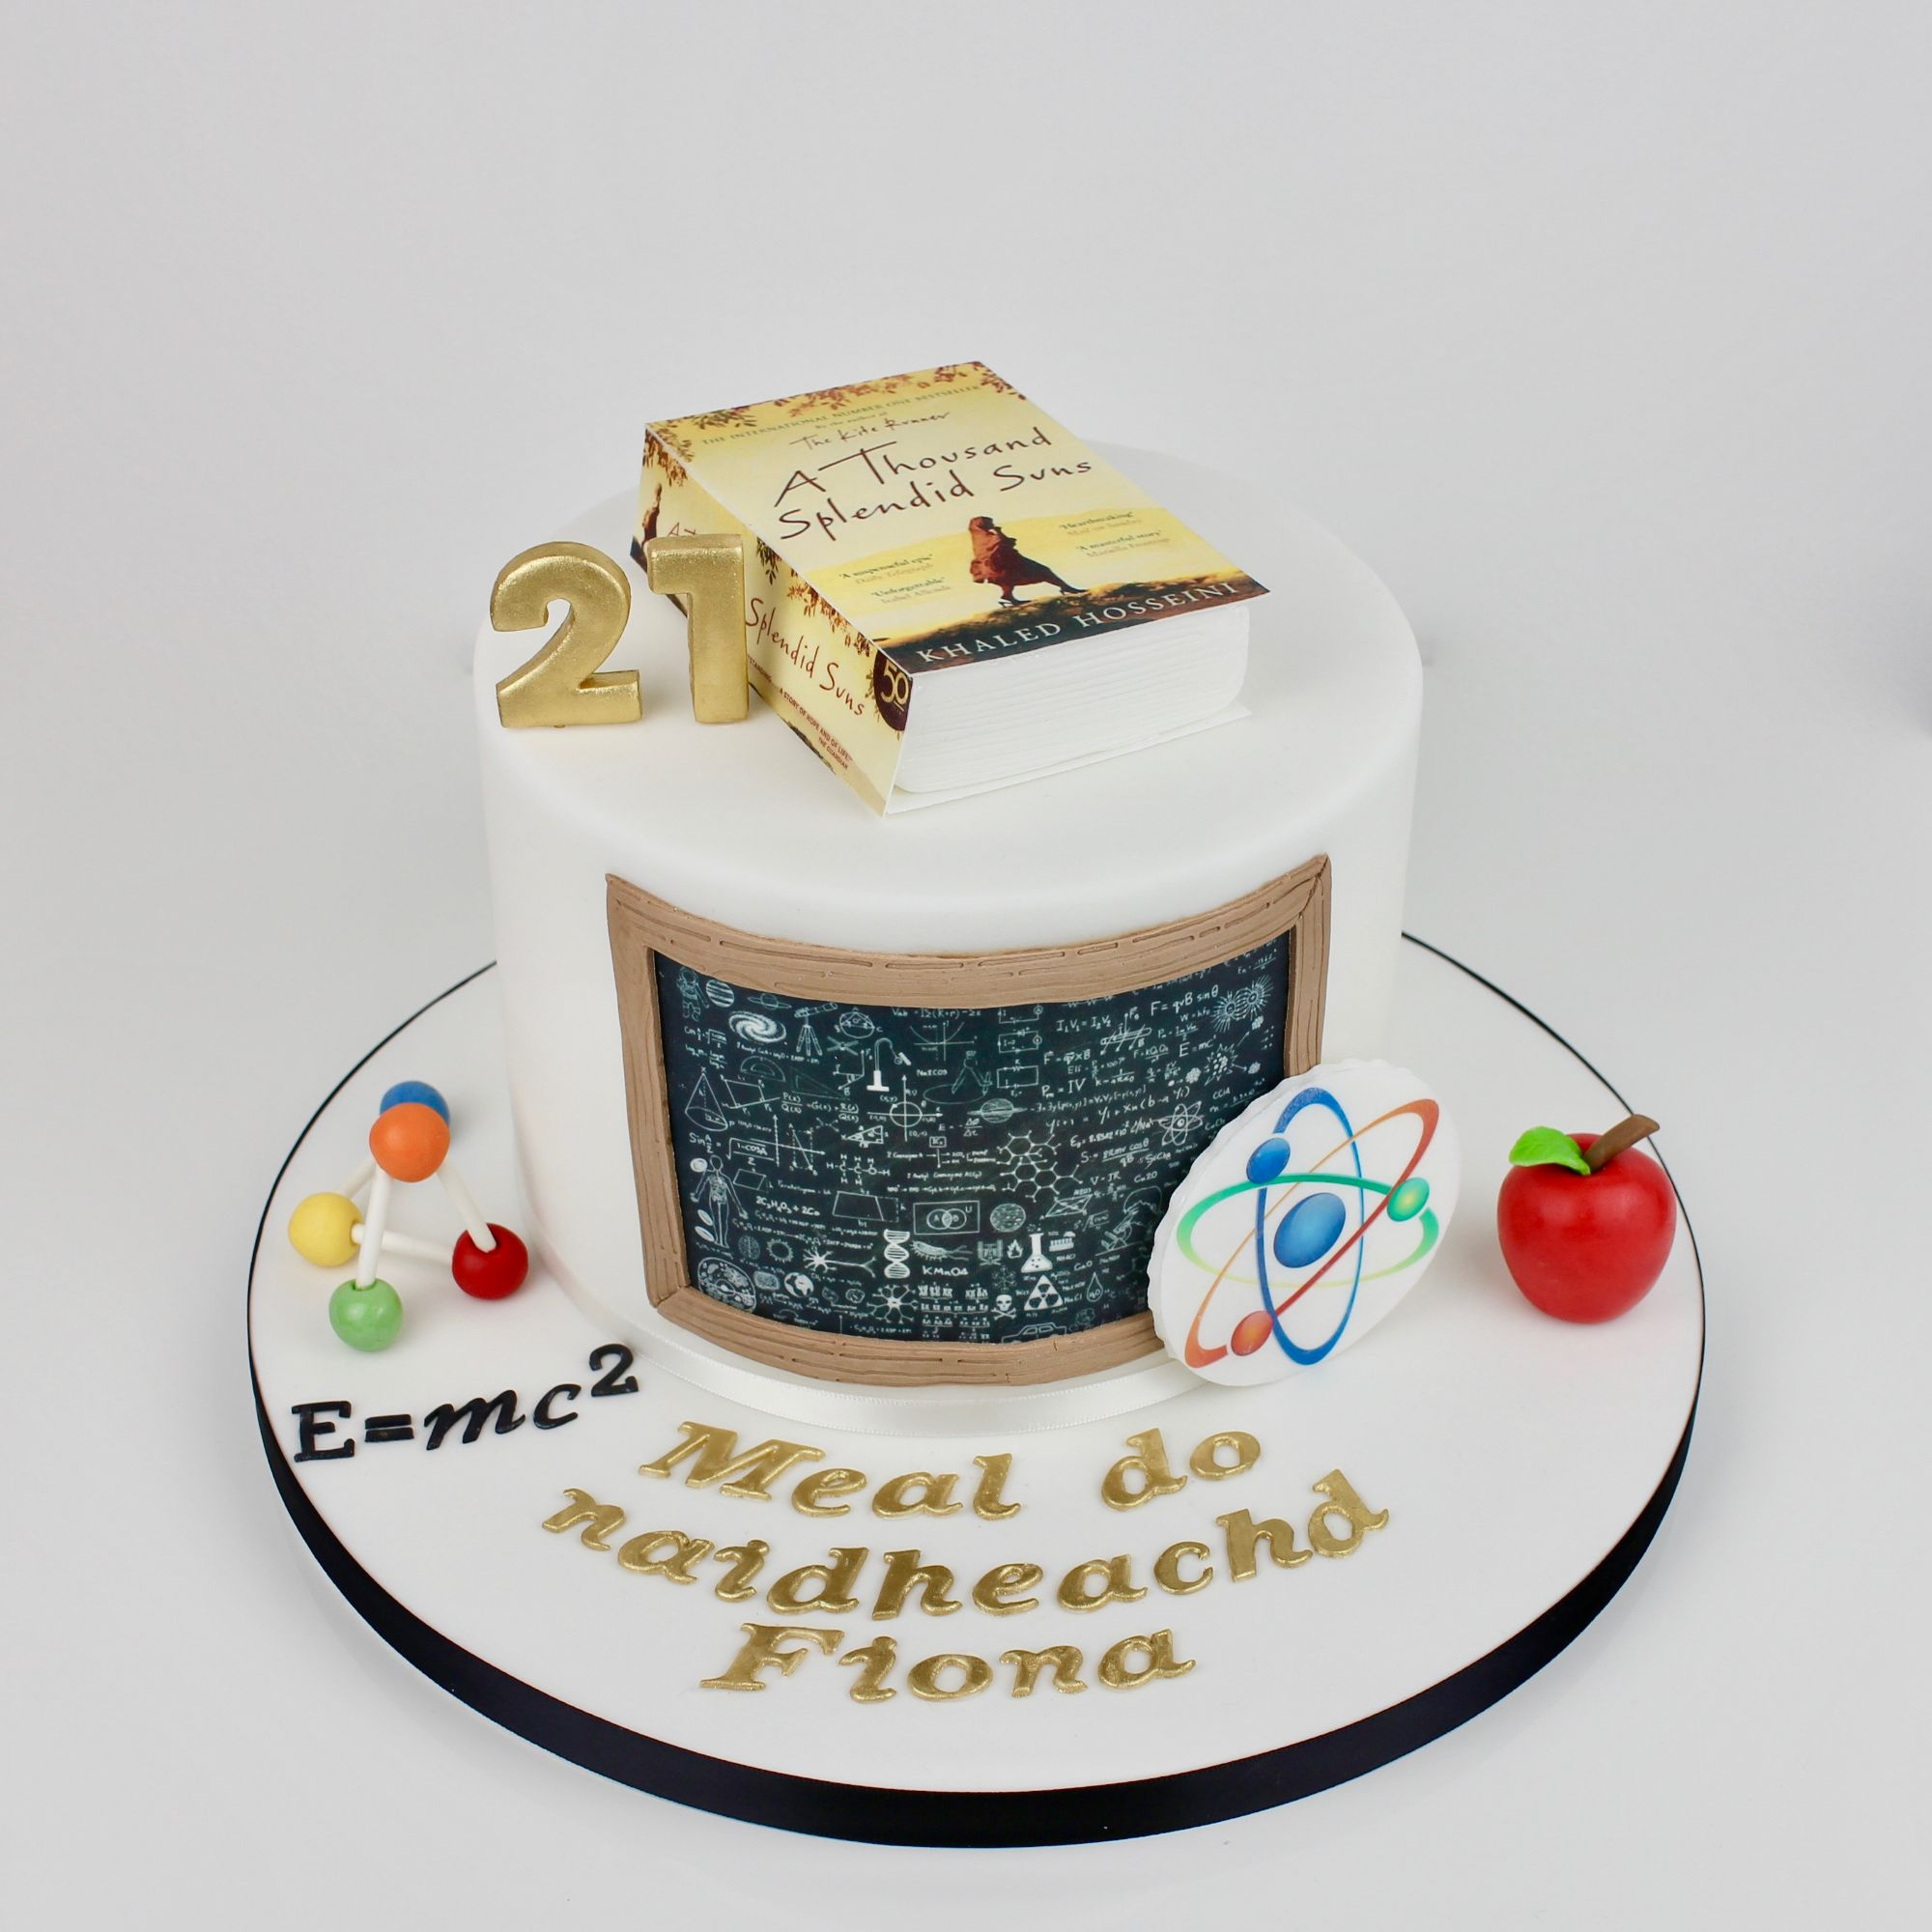 Physics & reading book cake